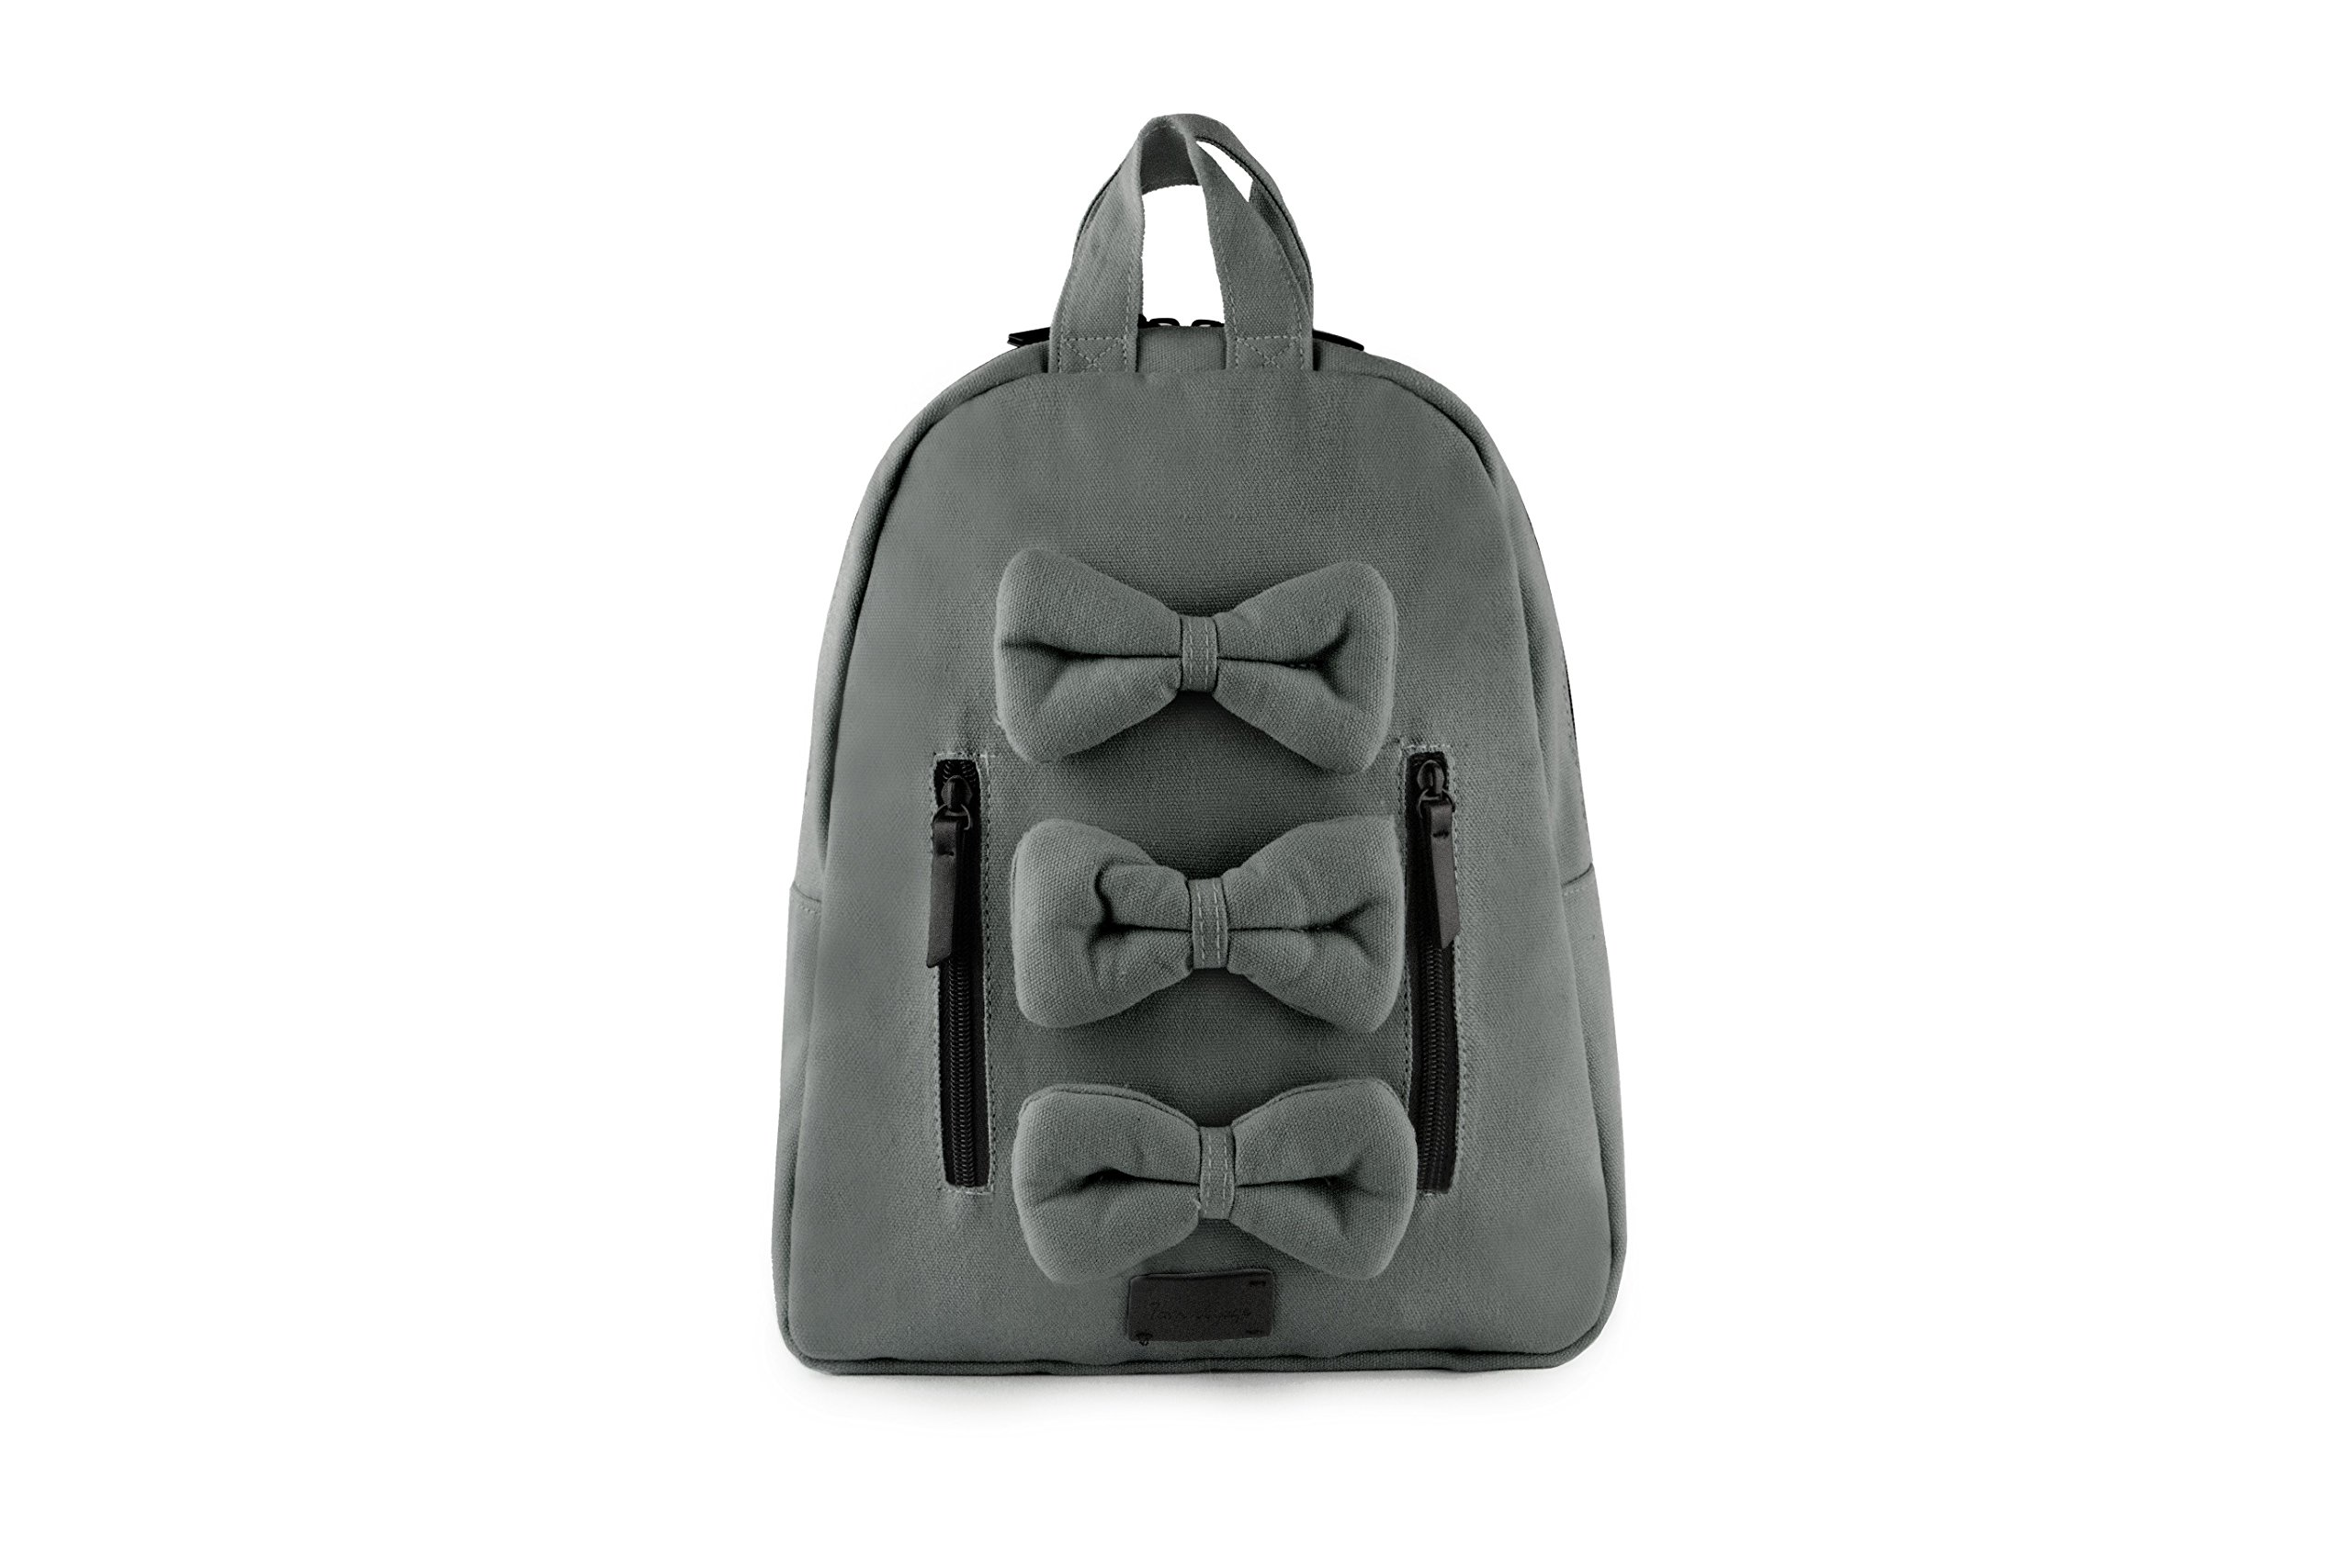 7AM Voyage Mini Bows Cotton Backpack, Toddlers, Kids and Teens School Backpack (Shadow)